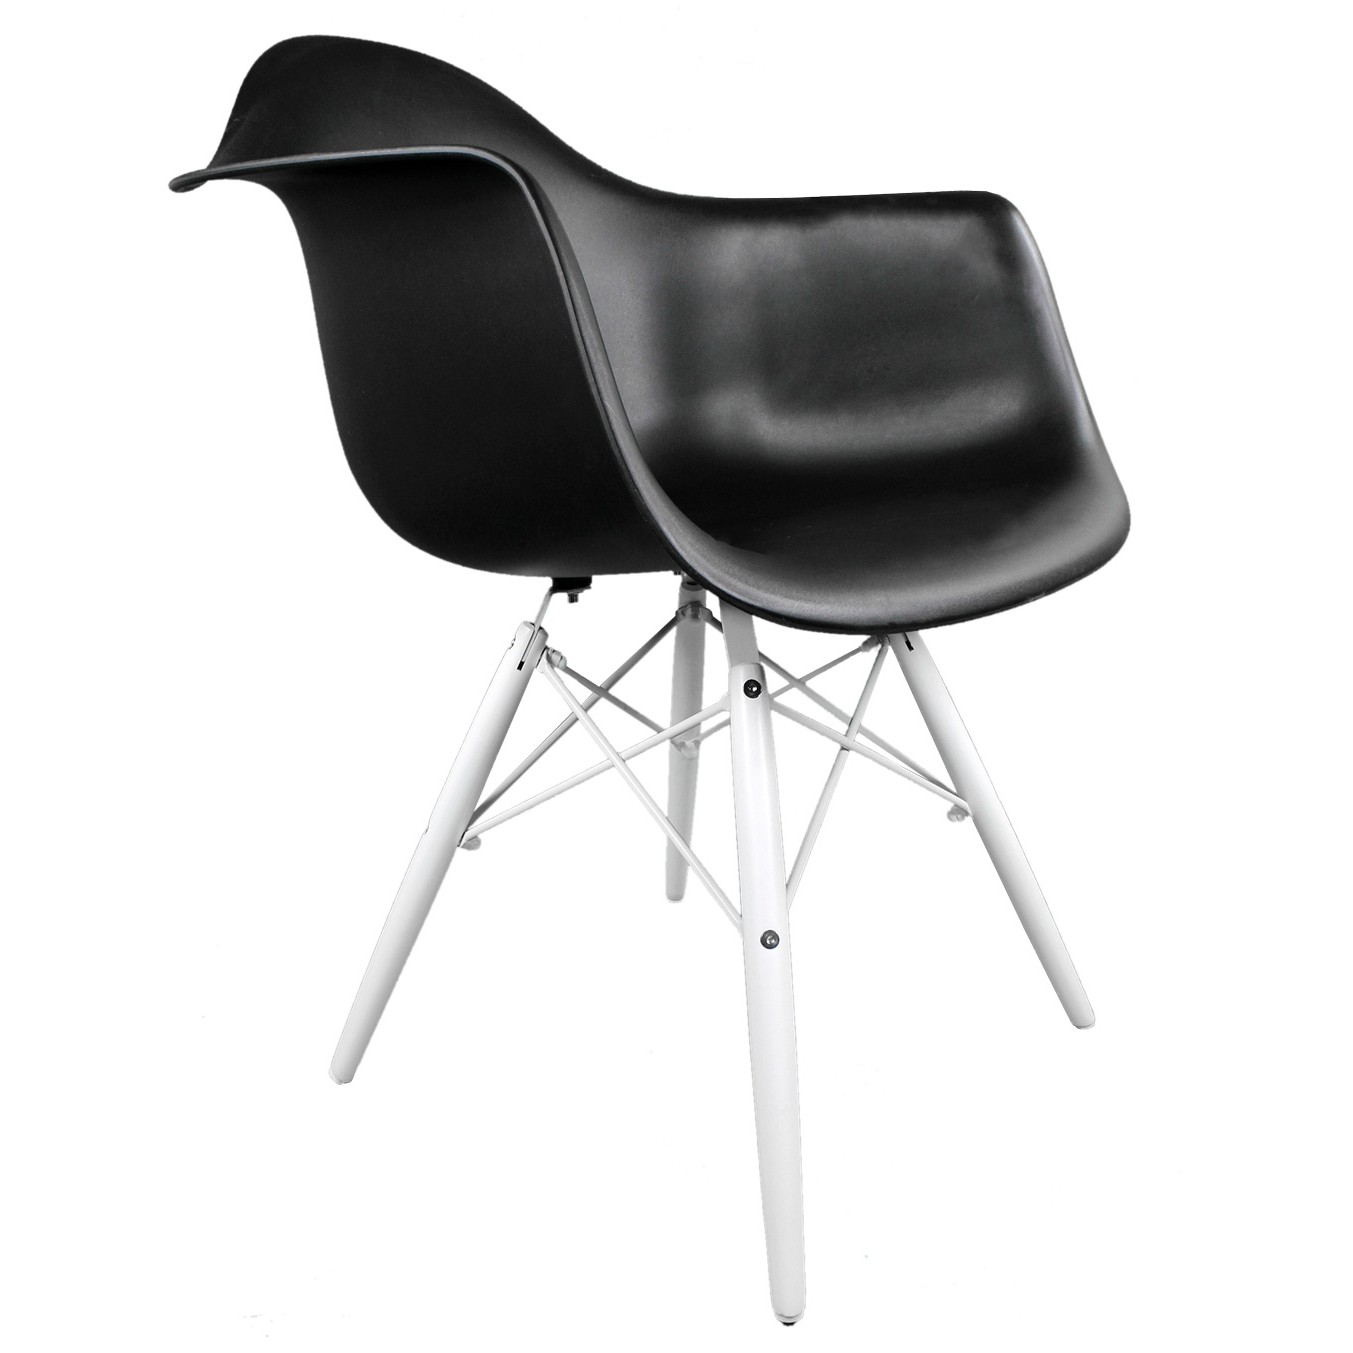 black plastic chair with wooden legs childrens bath eames style daw molded accent arm